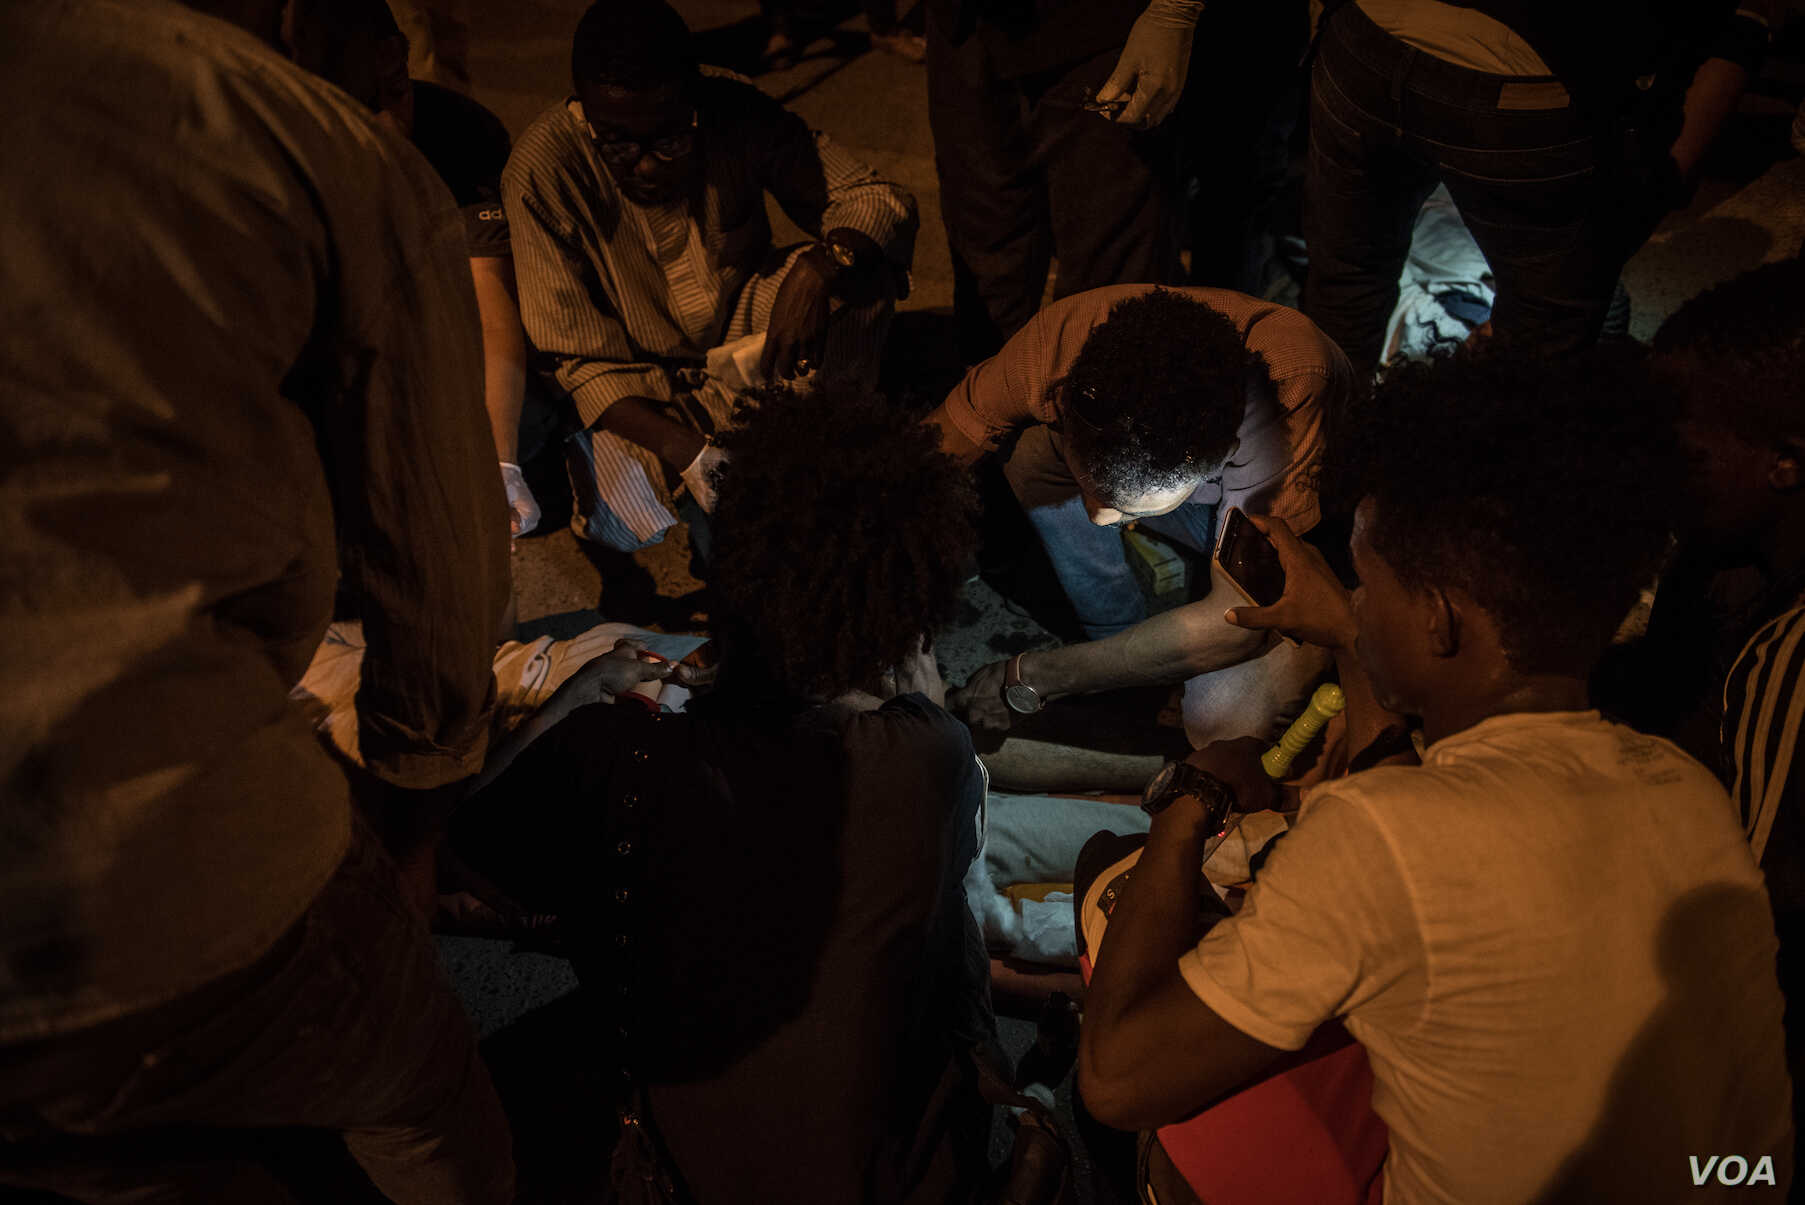 Medical staff treat a wounded protester in Khartoum on the night of May 13 2019. (J. Patinkin for VOA)